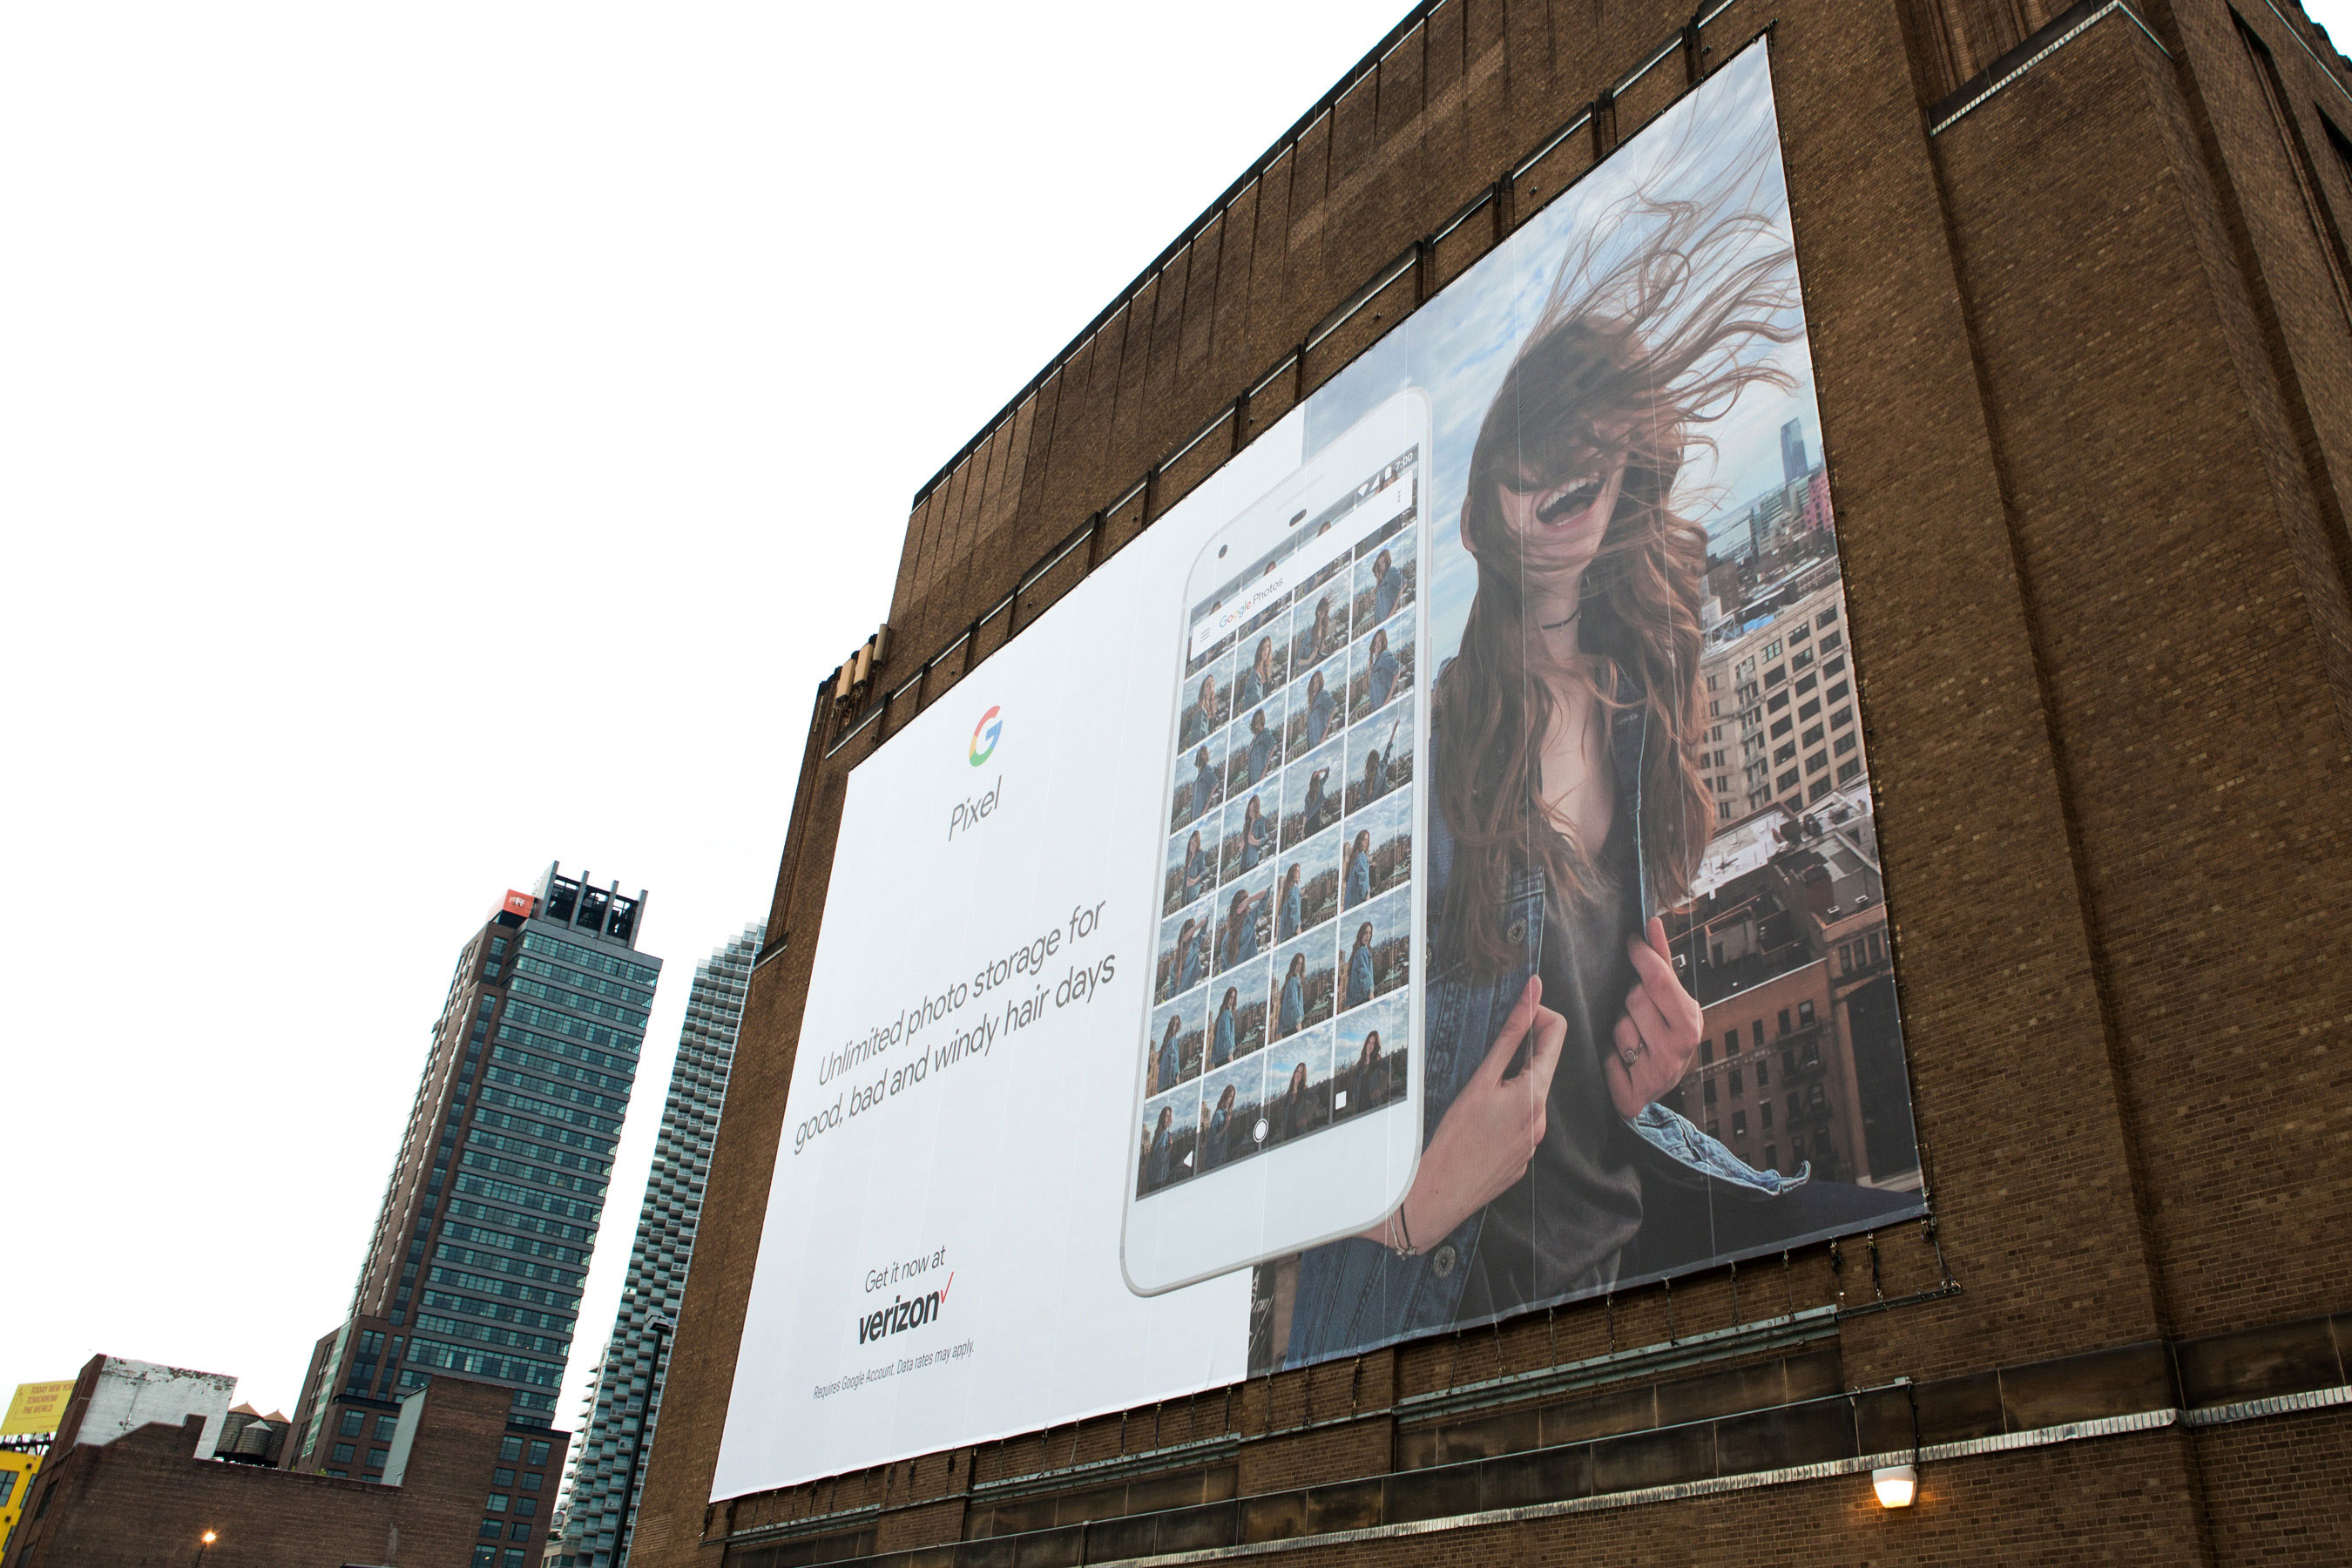 Google_Pixel_Manhattan_Billboard_2